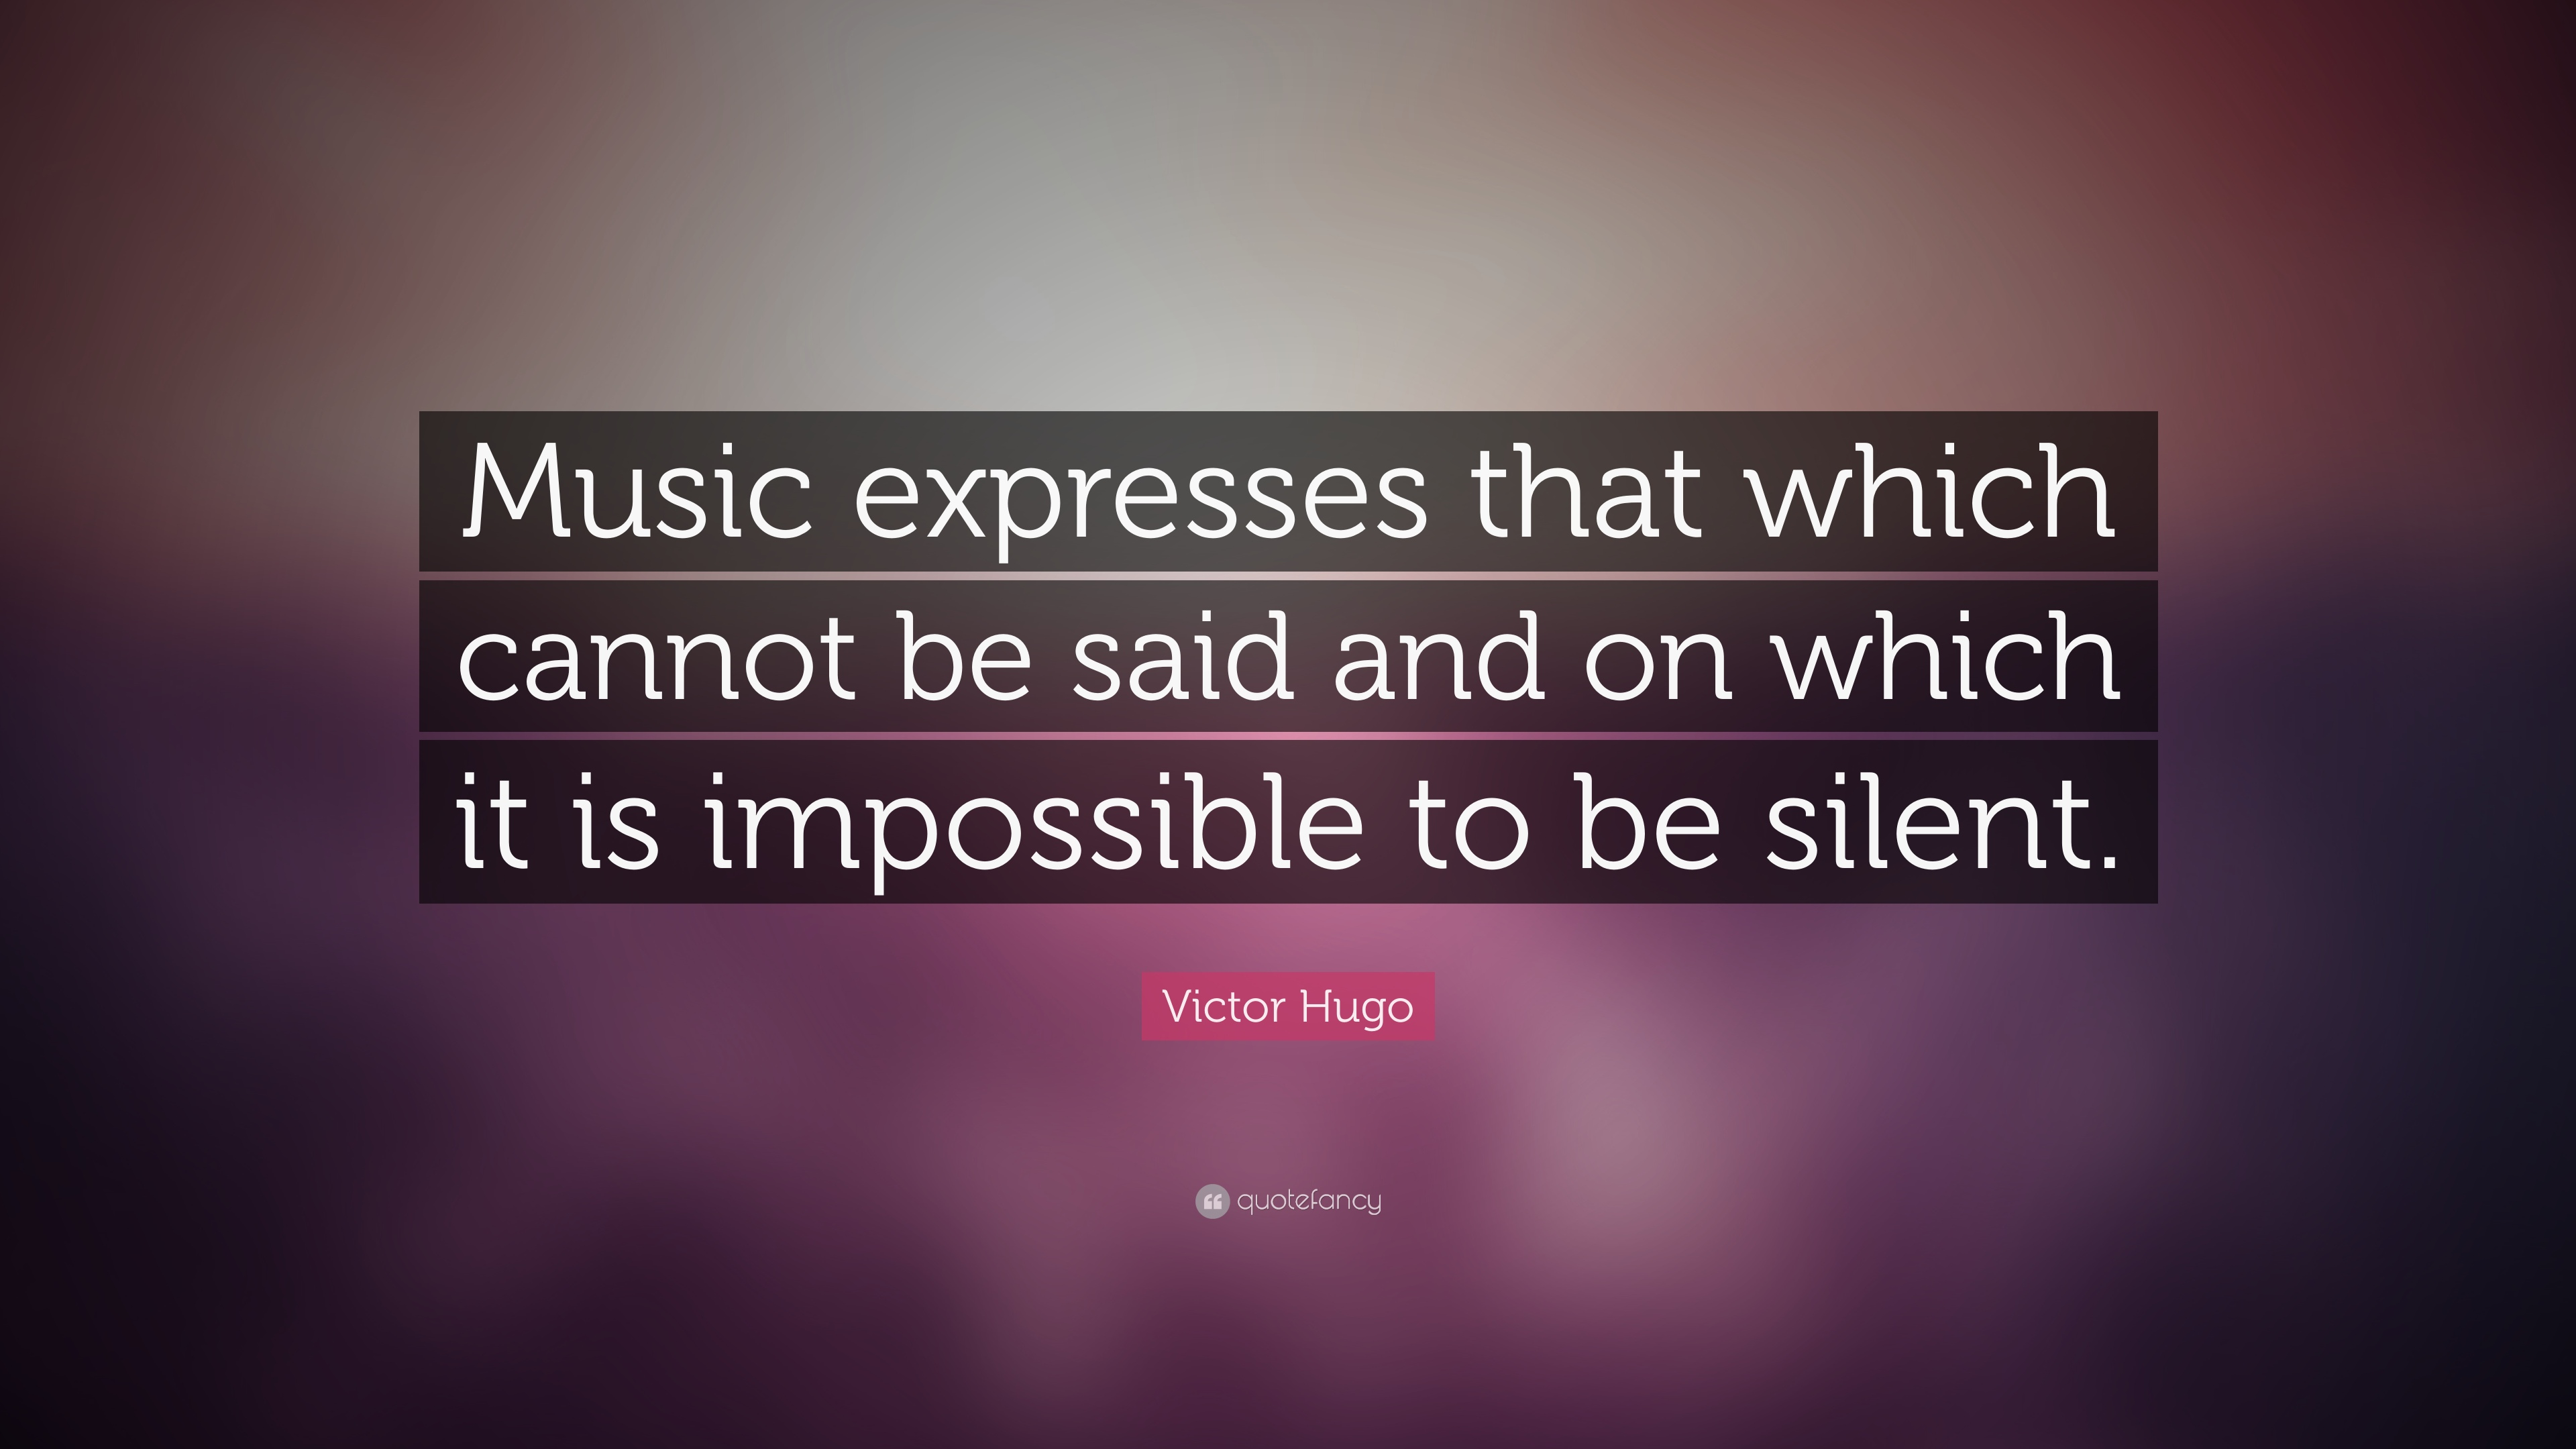 music quotes wallpapers - photo #10